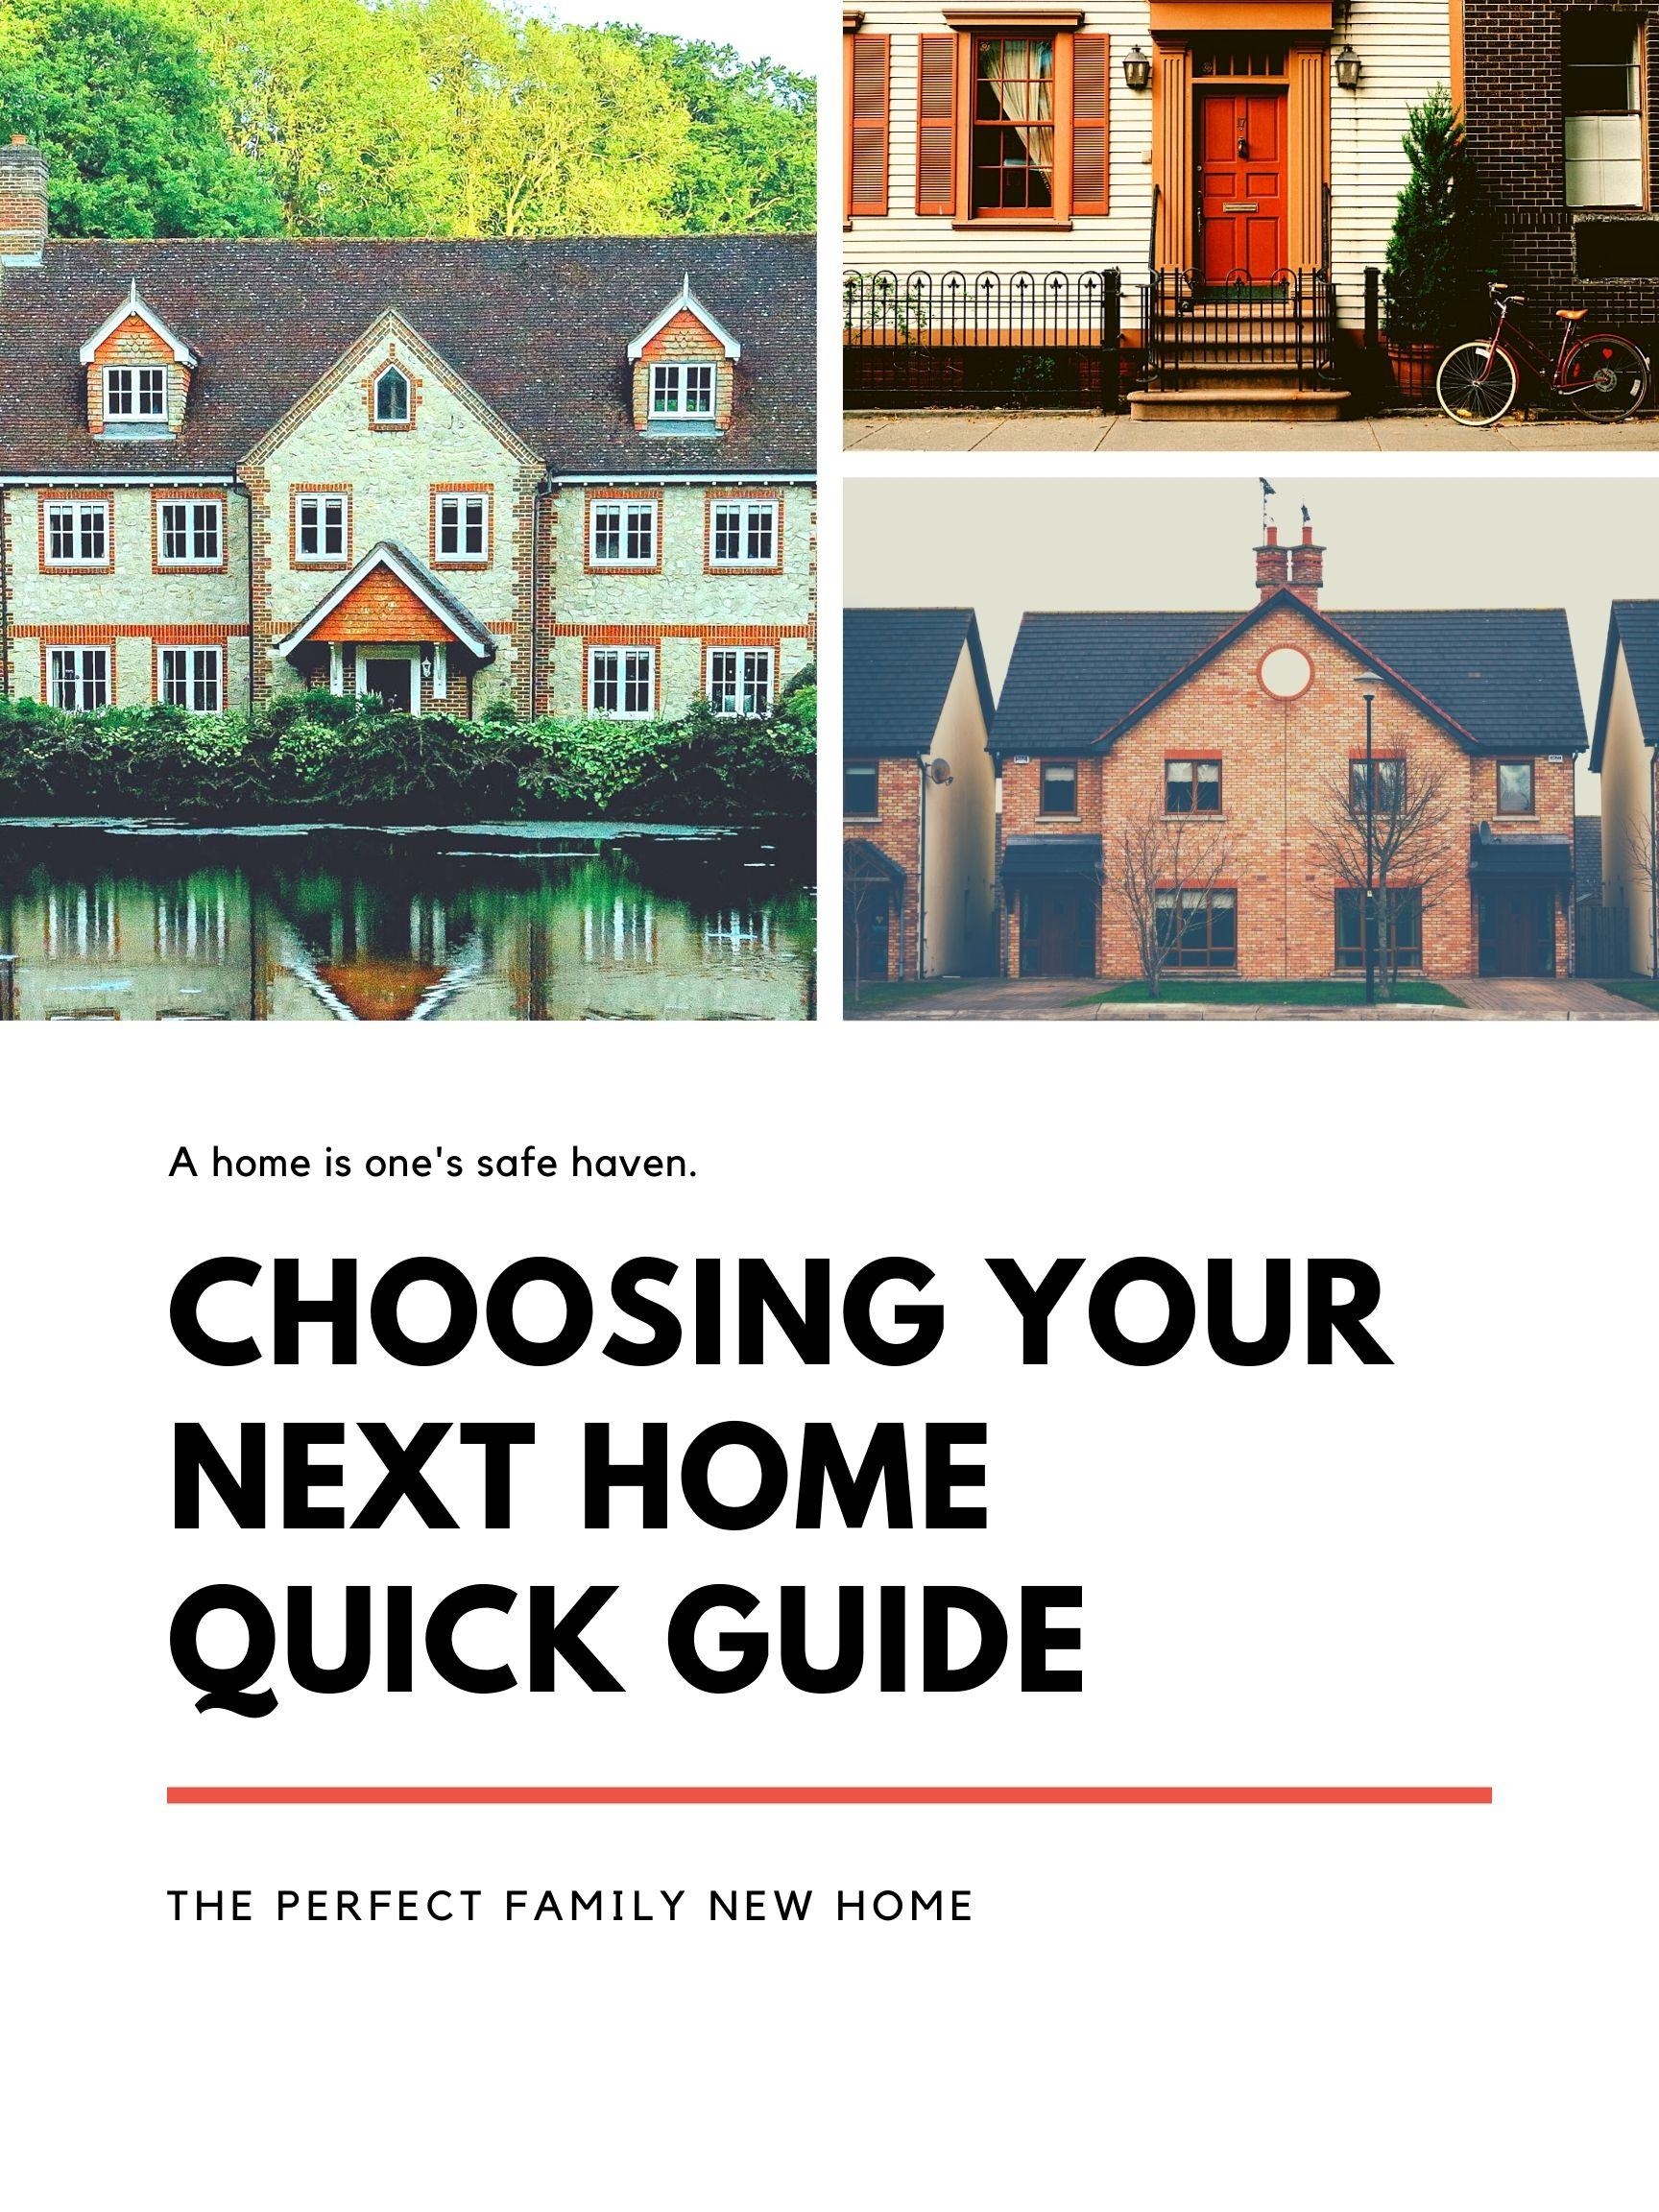 Choosing the perfect home for sale for your family